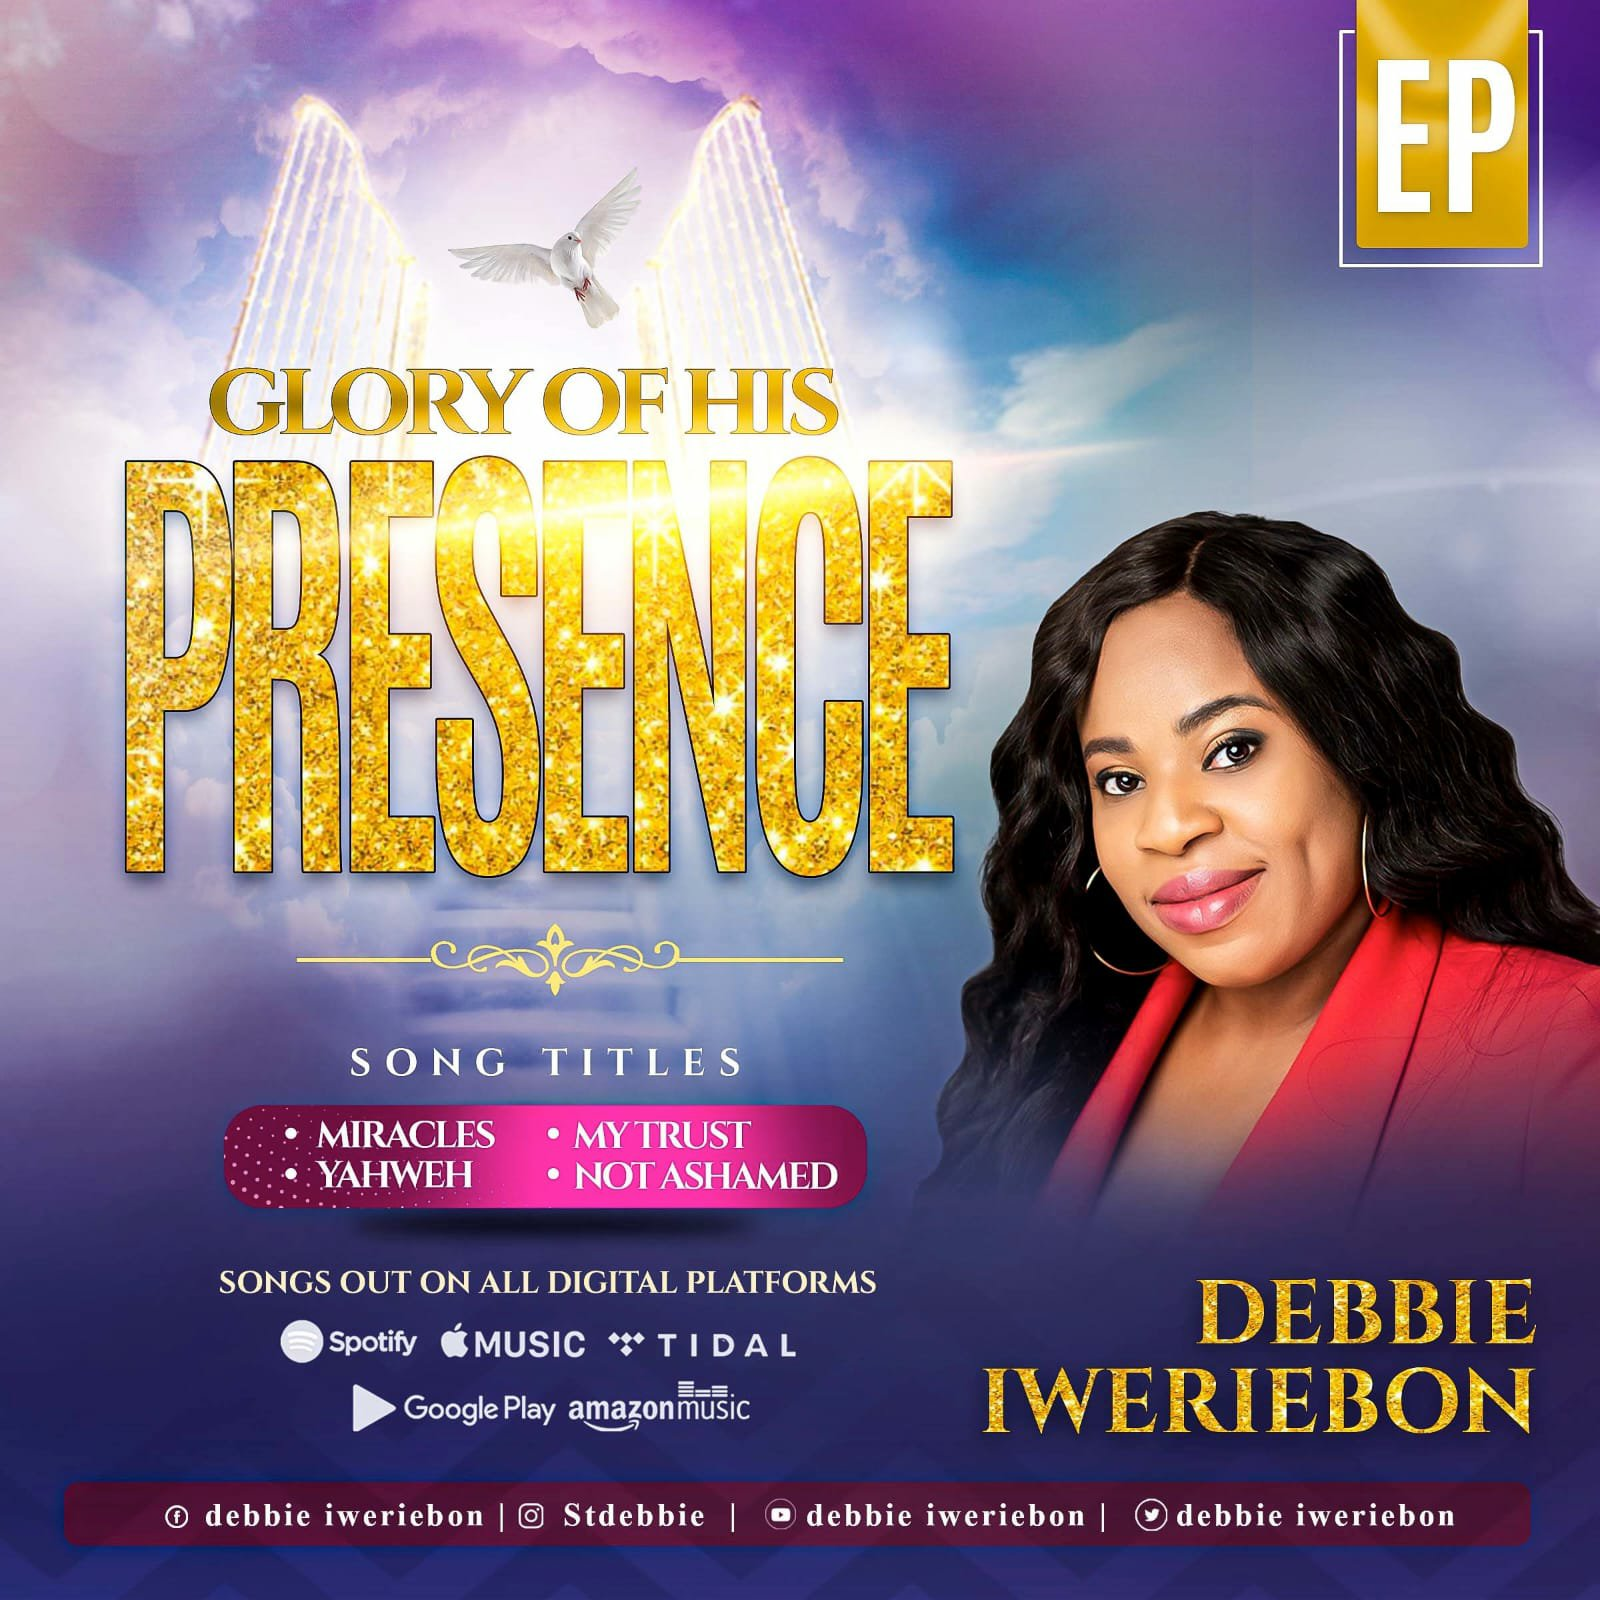 """Debbie Iweriebon Releases New Ep titled """"Glory Of His Presence"""""""